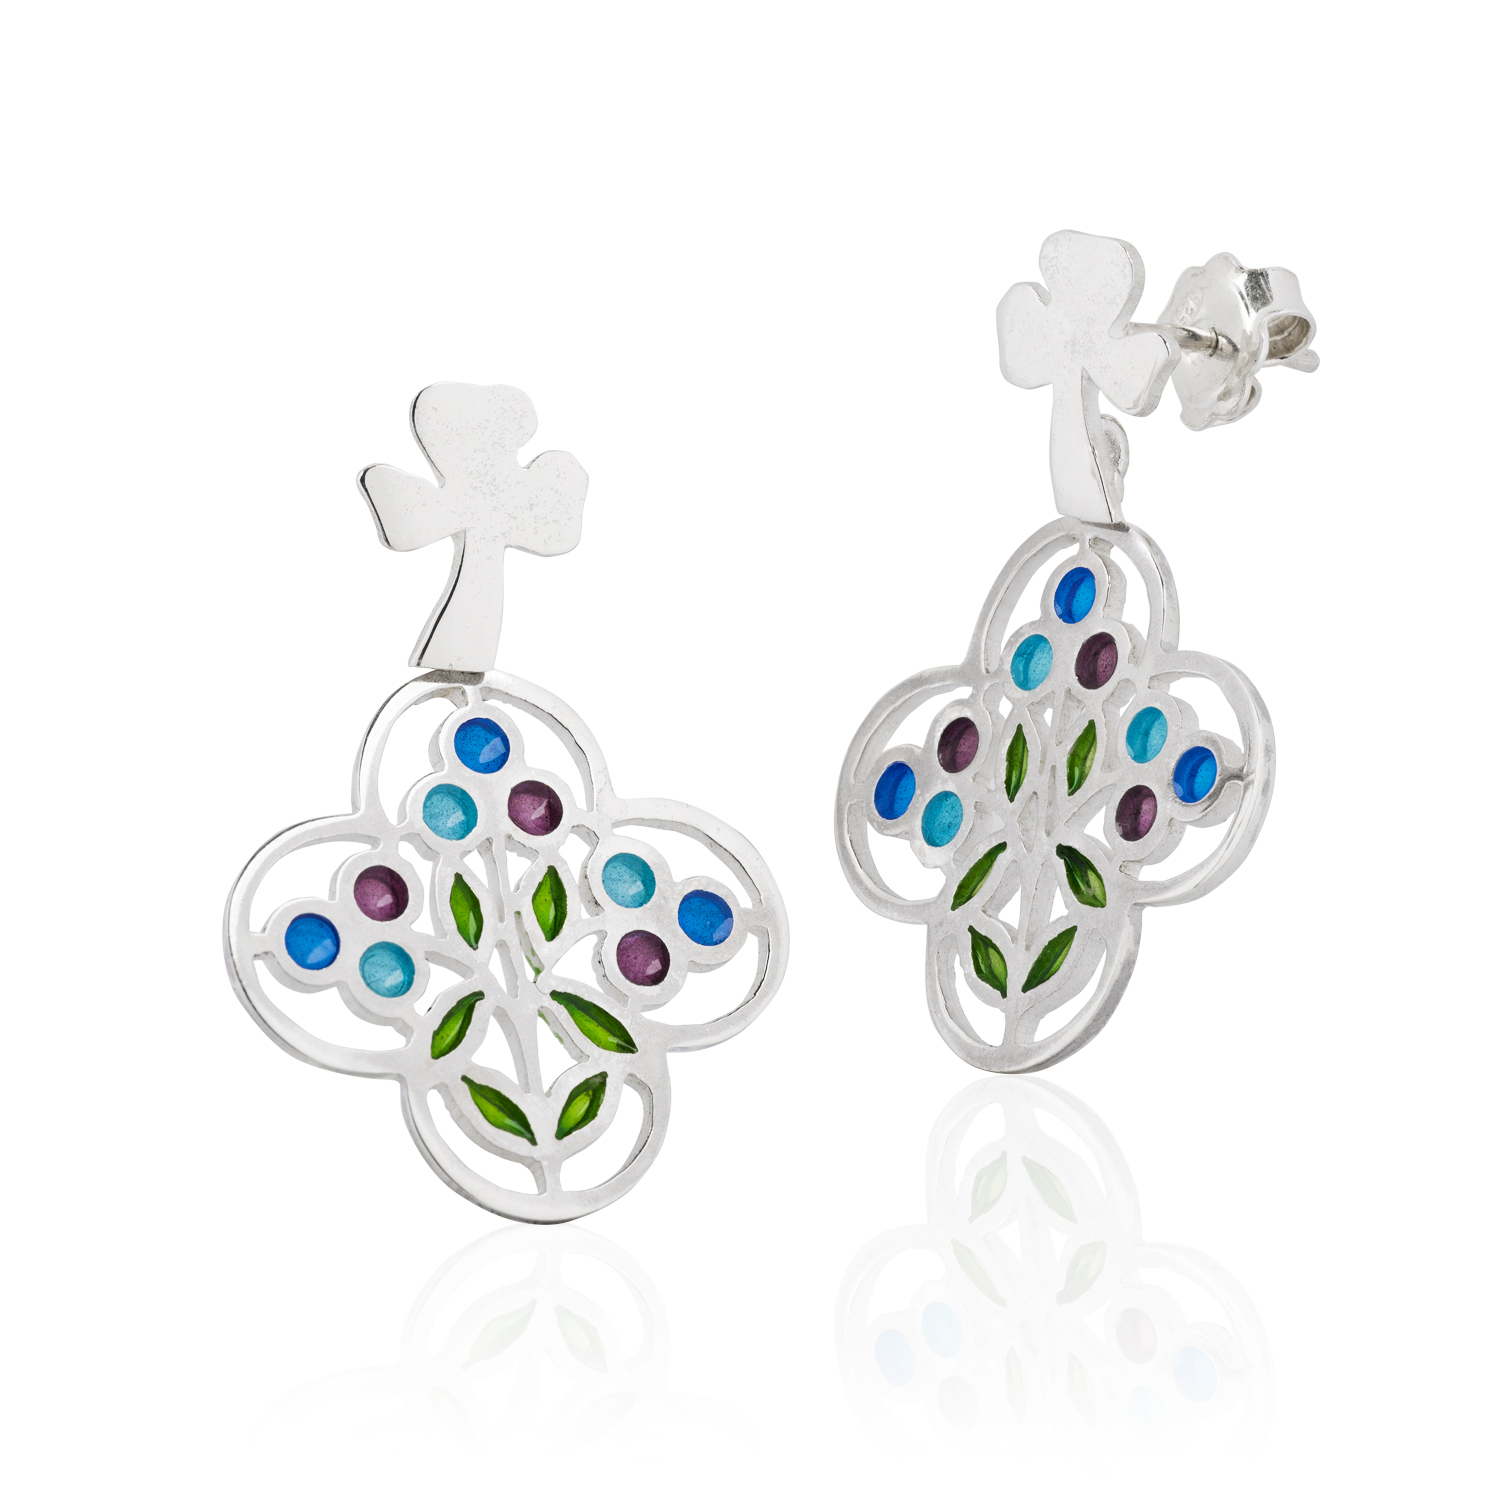 Casa Amatller enameled earrings